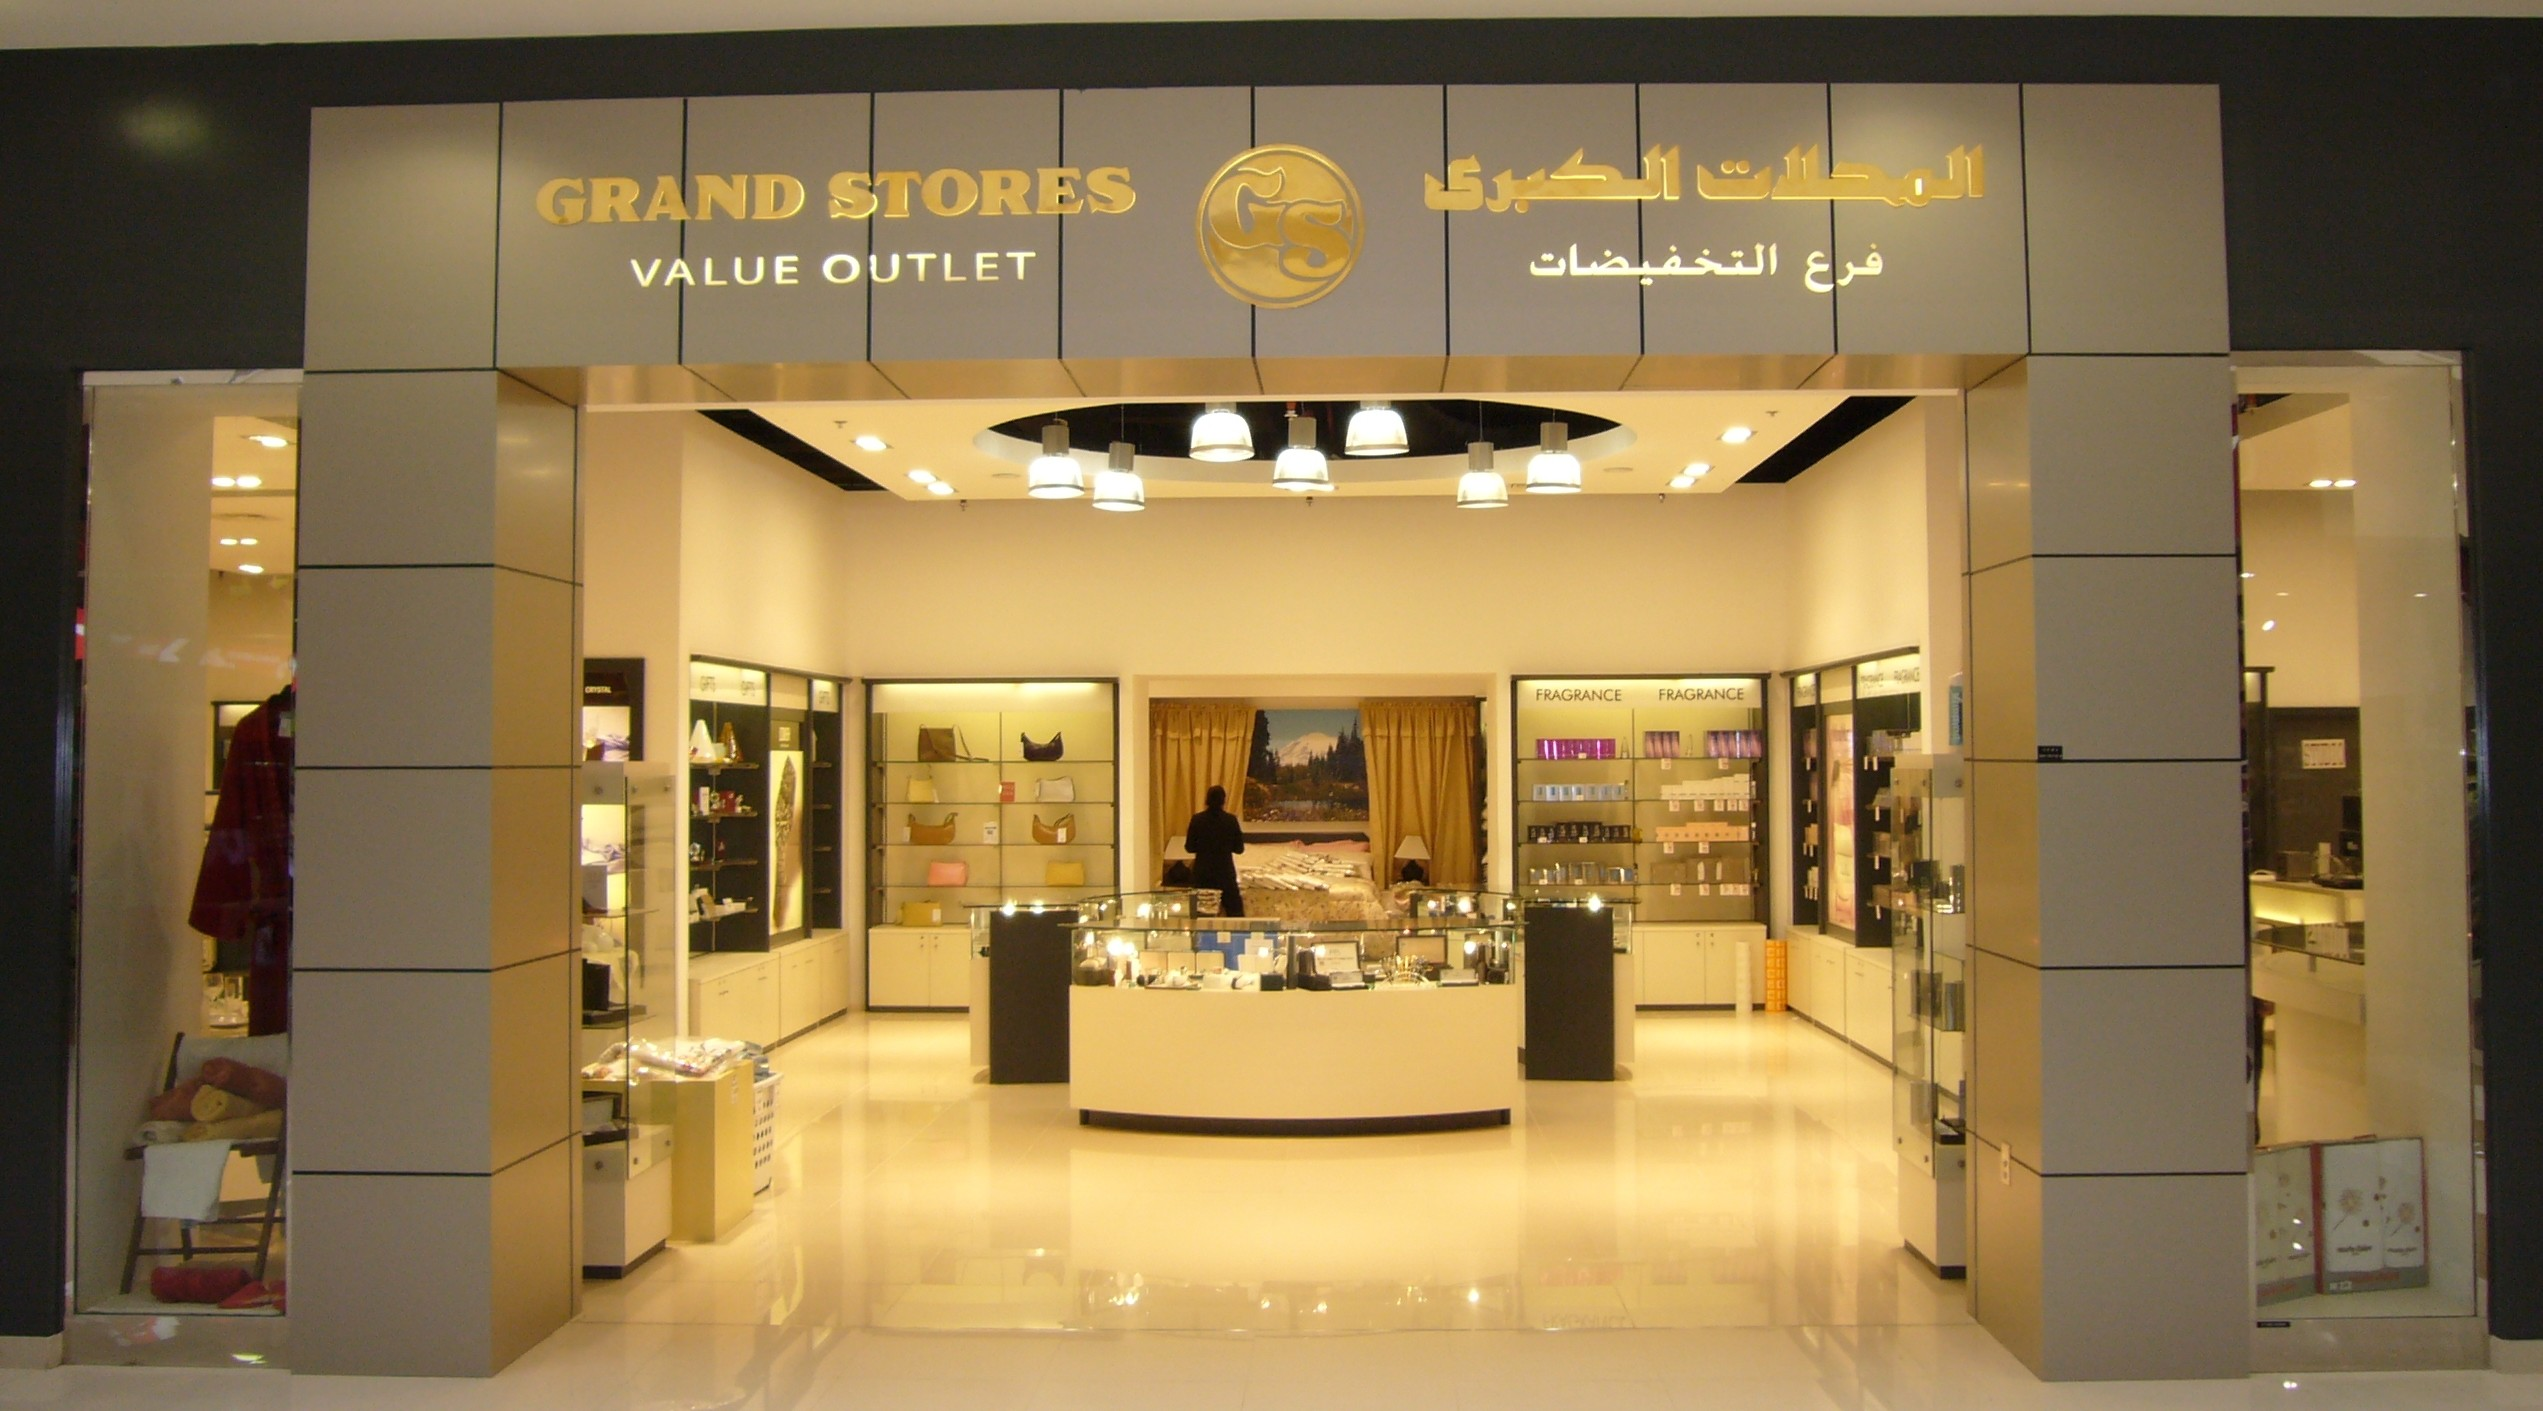 Grand stores outlet dubai shopping guide for Outlet design